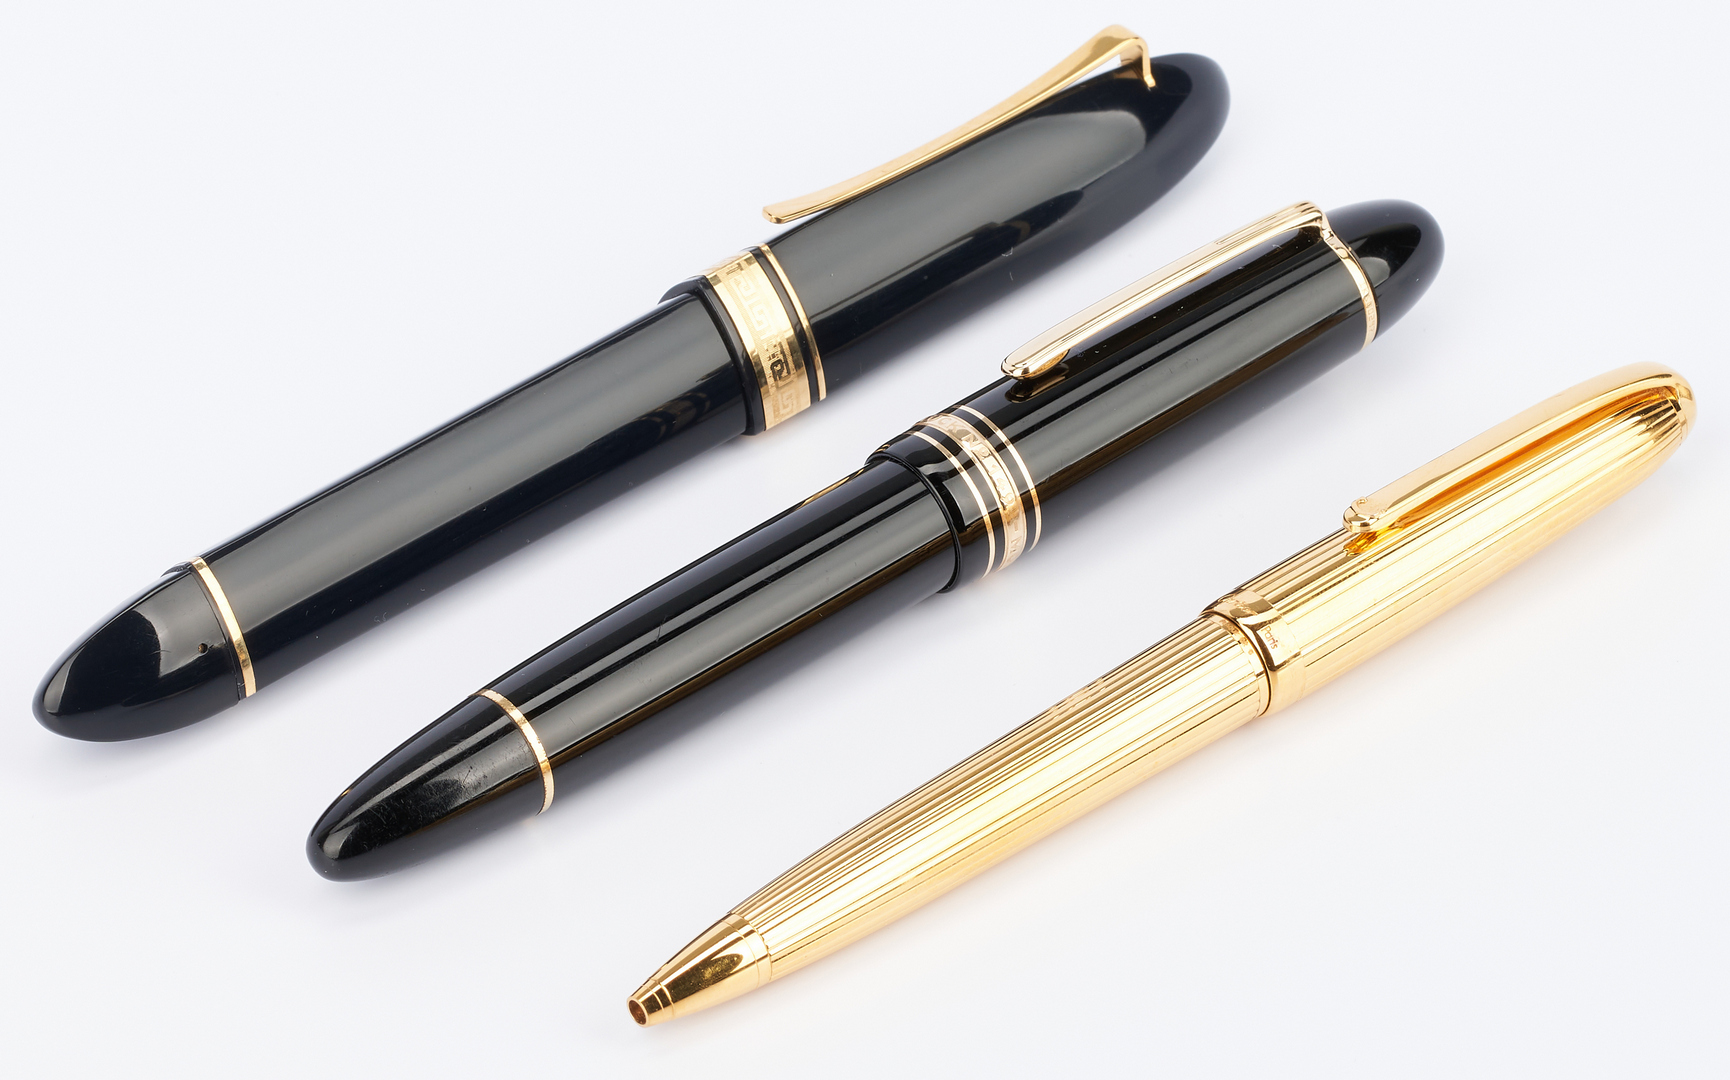 Lot 54: 3 Pens, incl. Montblanc, Cartier, Omas